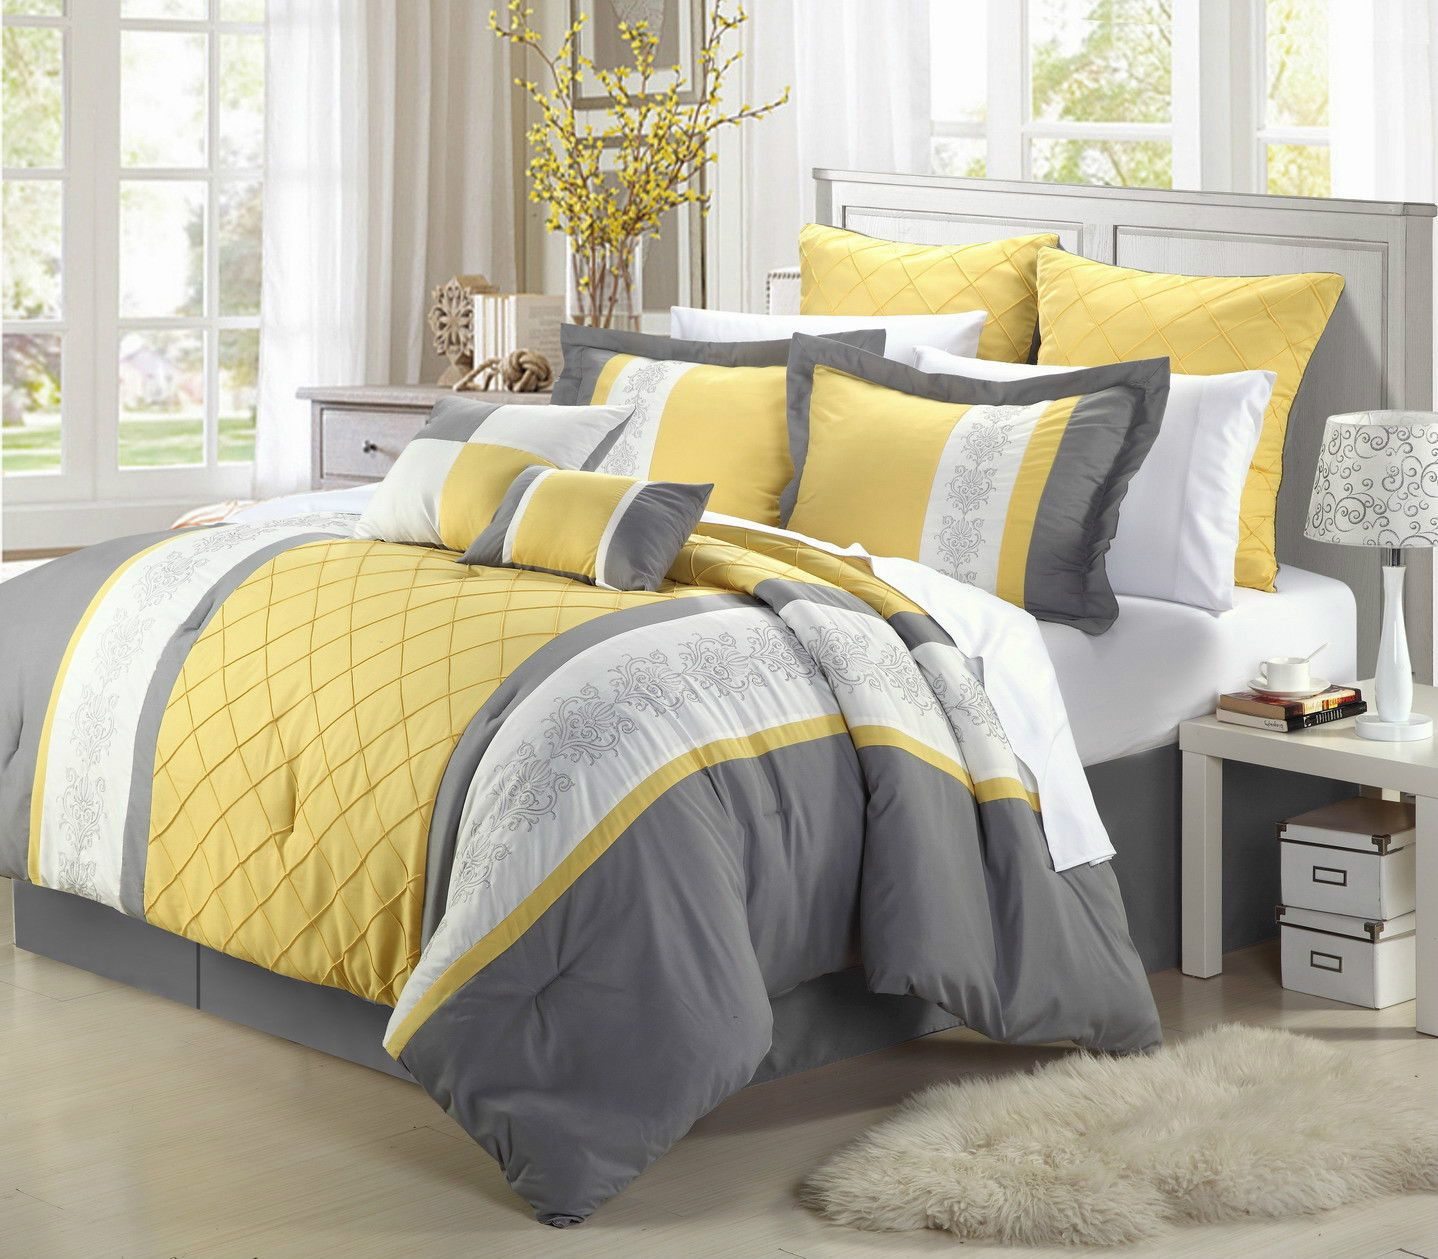 shipping overstock design set yellow today shane free grey piece embroidered and bath product bedding comforter